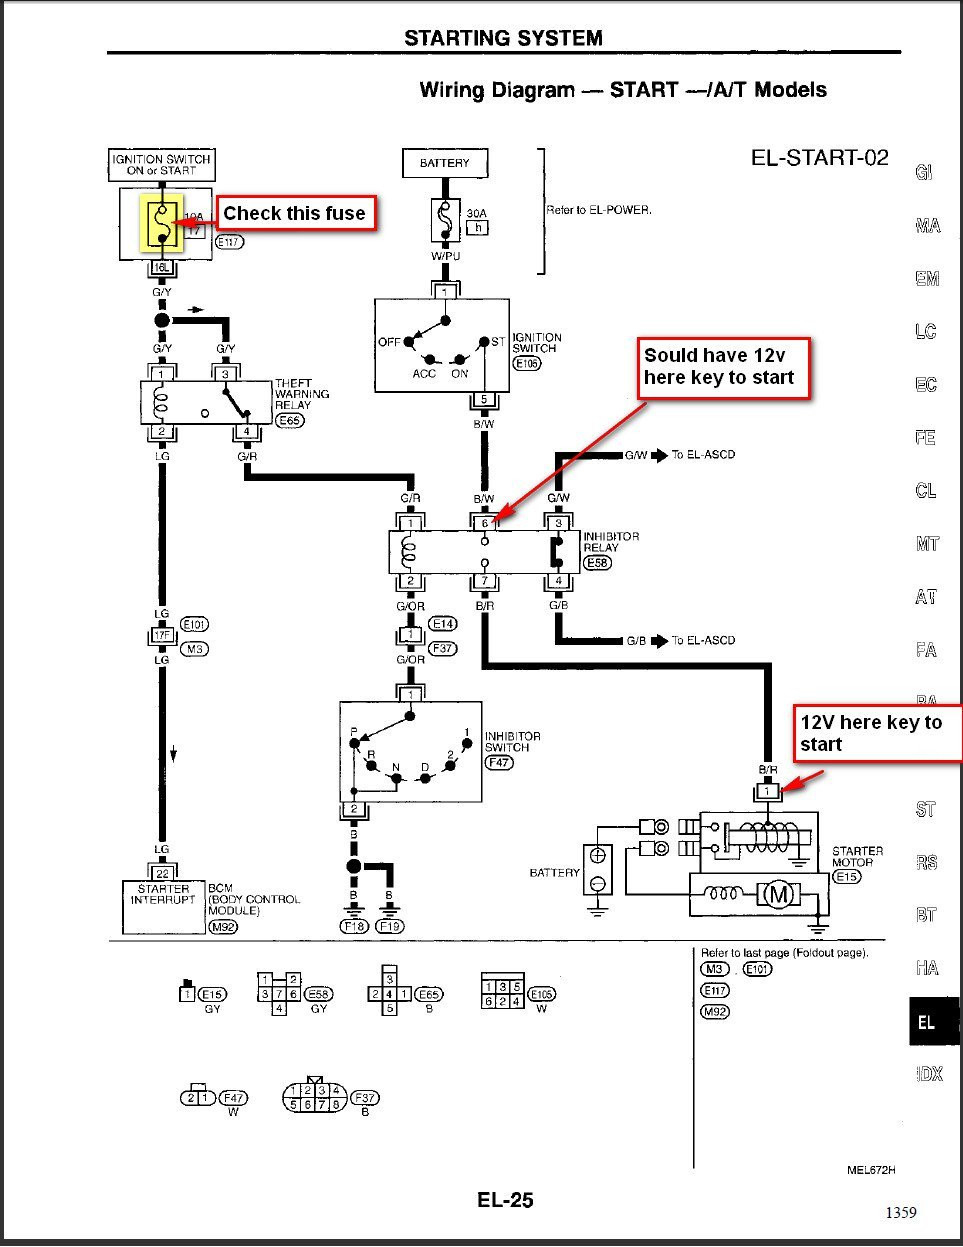 Vsm 900 Wiring Diagram | Manual E-Books - Signal Stat 900 Wiring Diagram